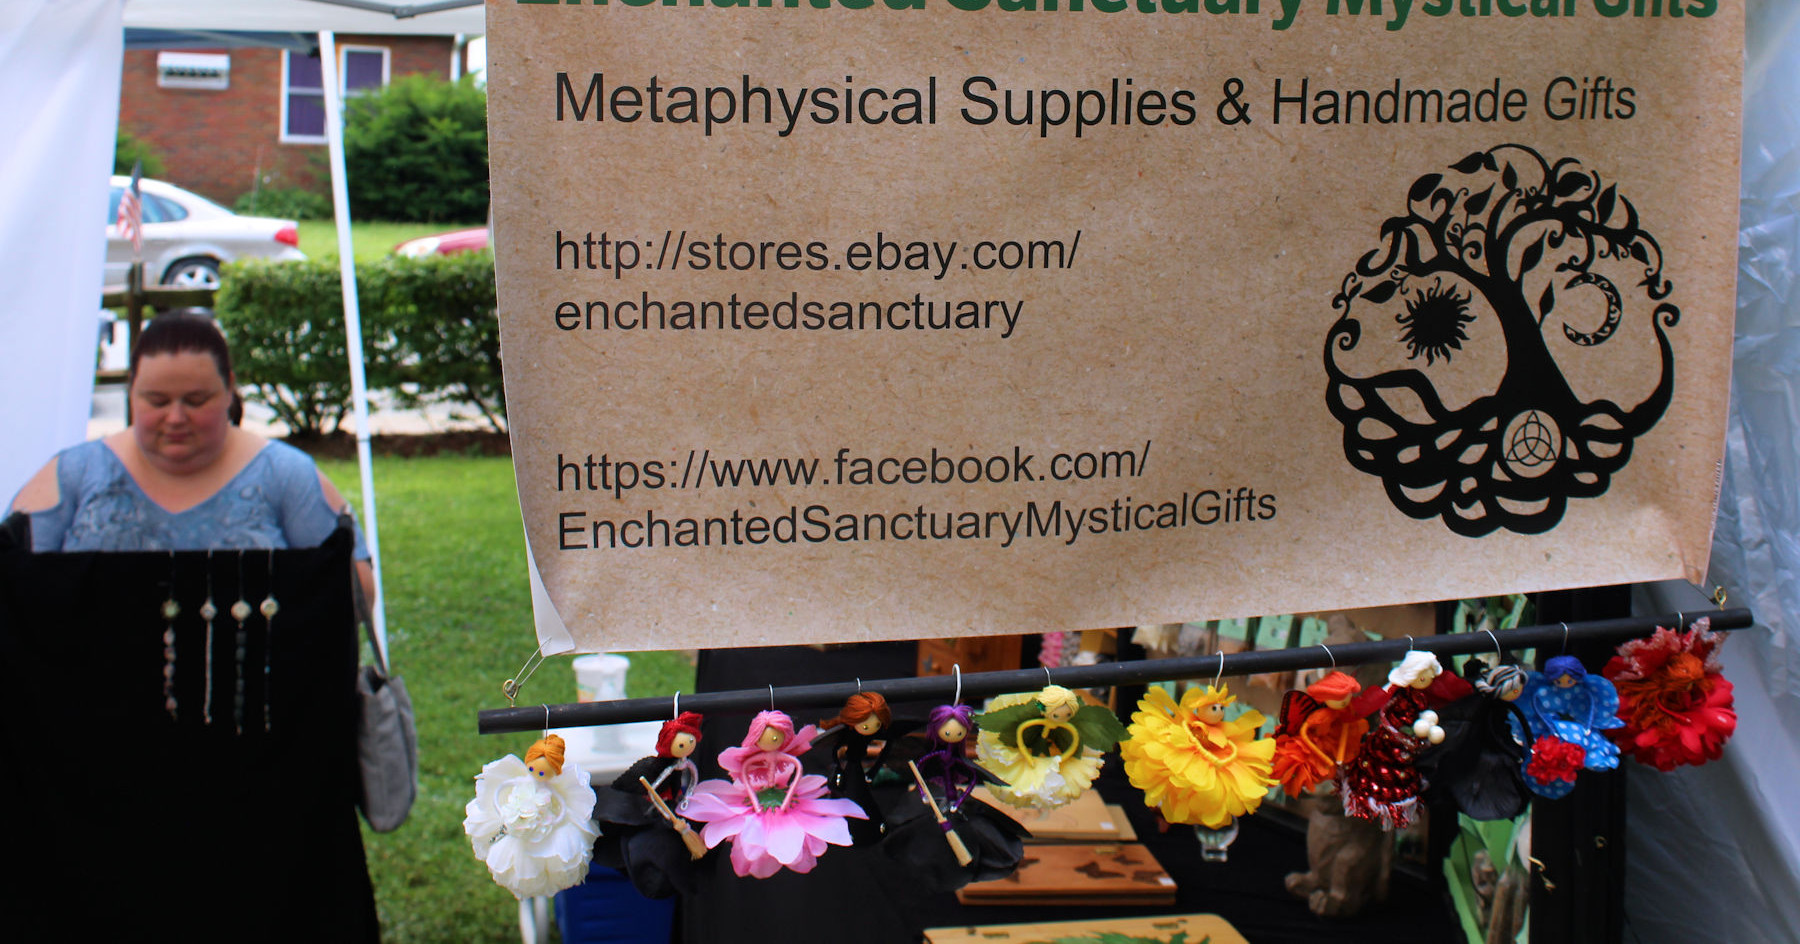 ENCHANGED SANCTUARY MYSTICAL GIFTS